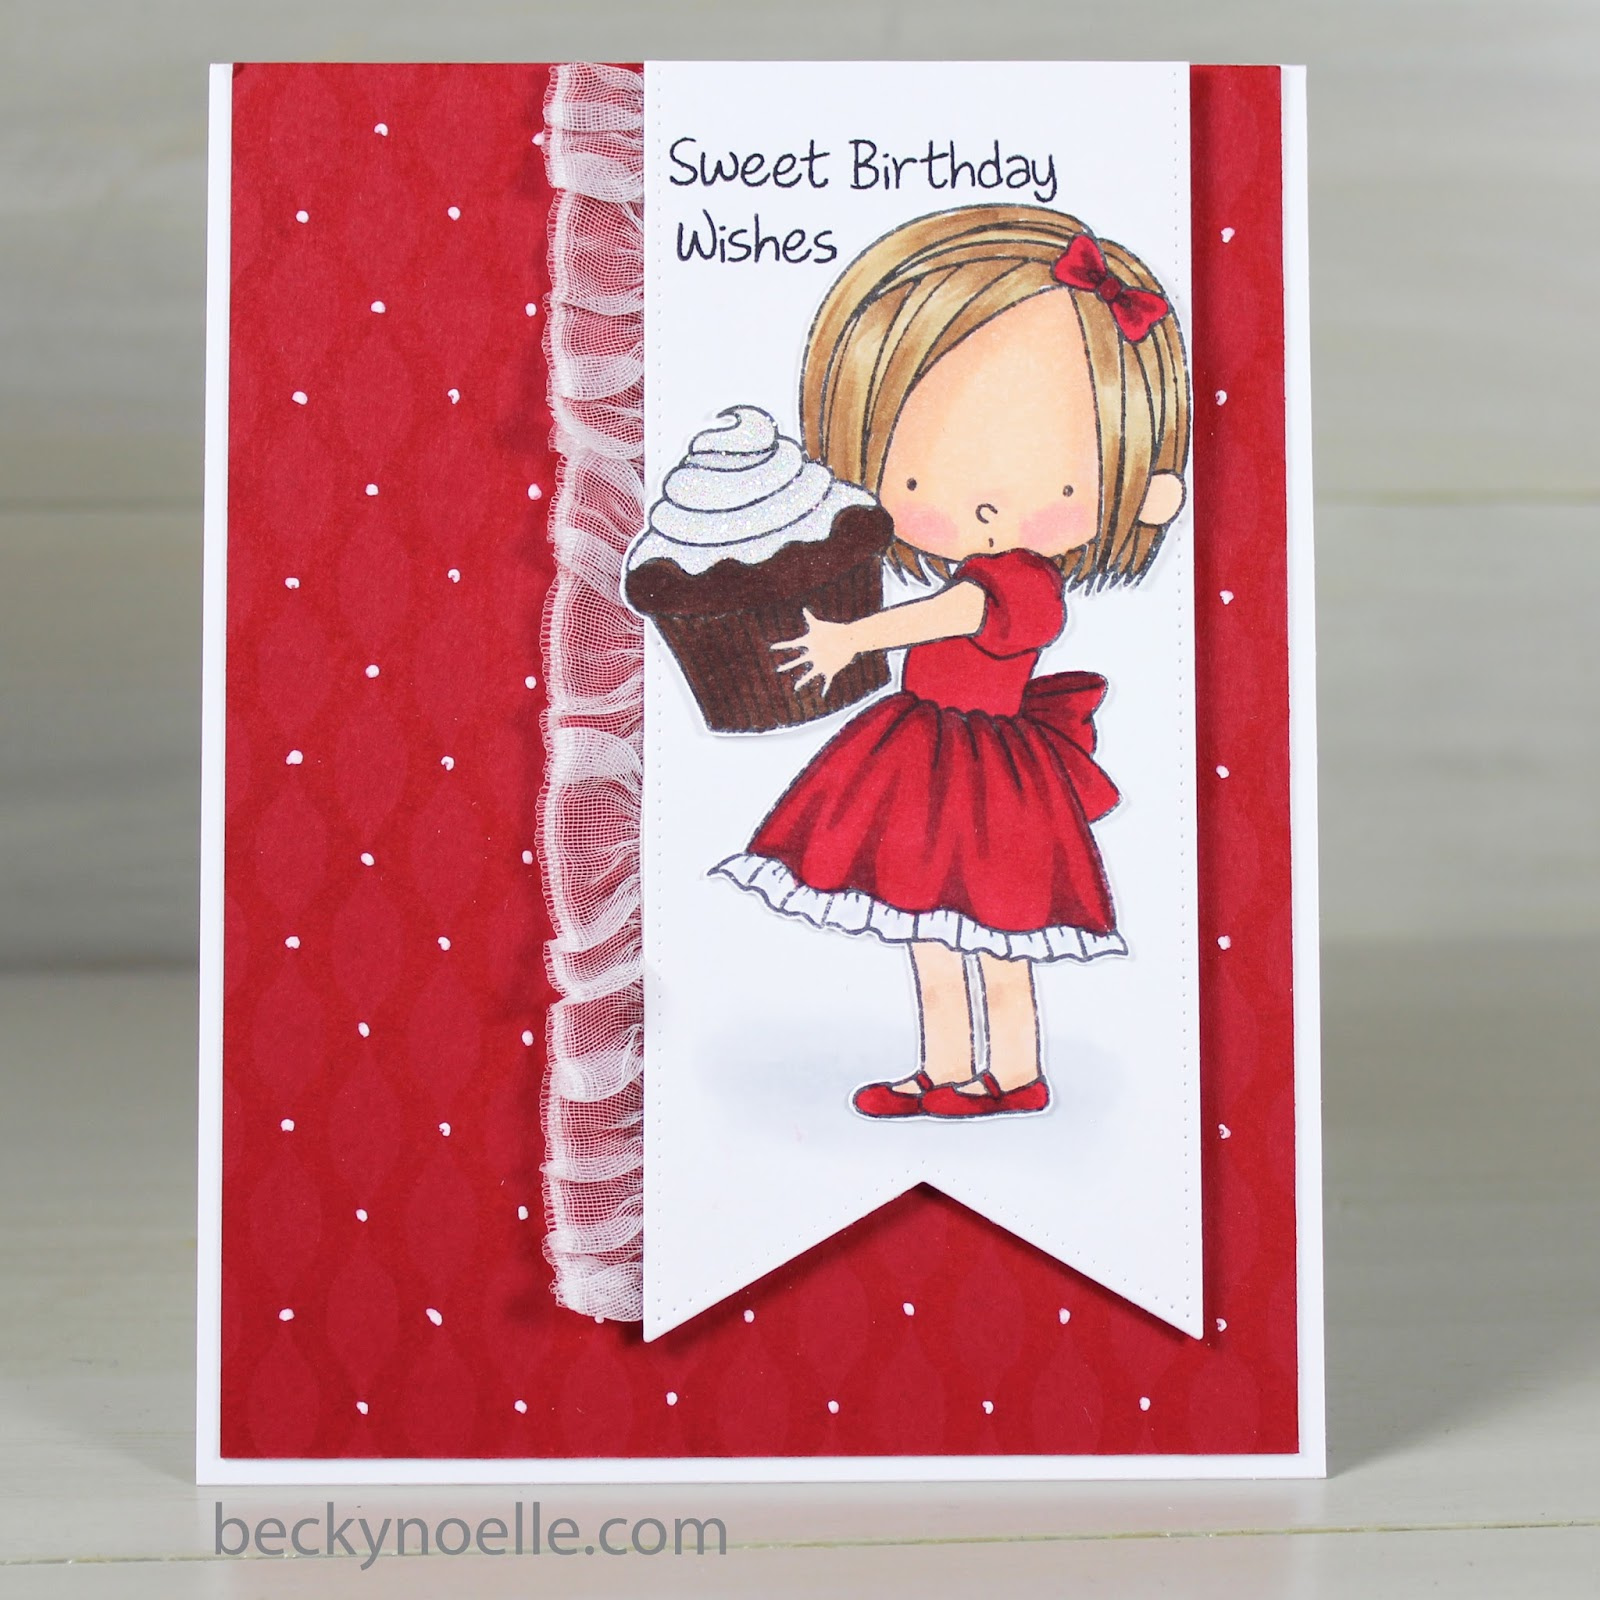 Sweet birthday wishes life outside the lines by beckynoelle i have a sweet birthday card to share today bookmarktalkfo Choice Image